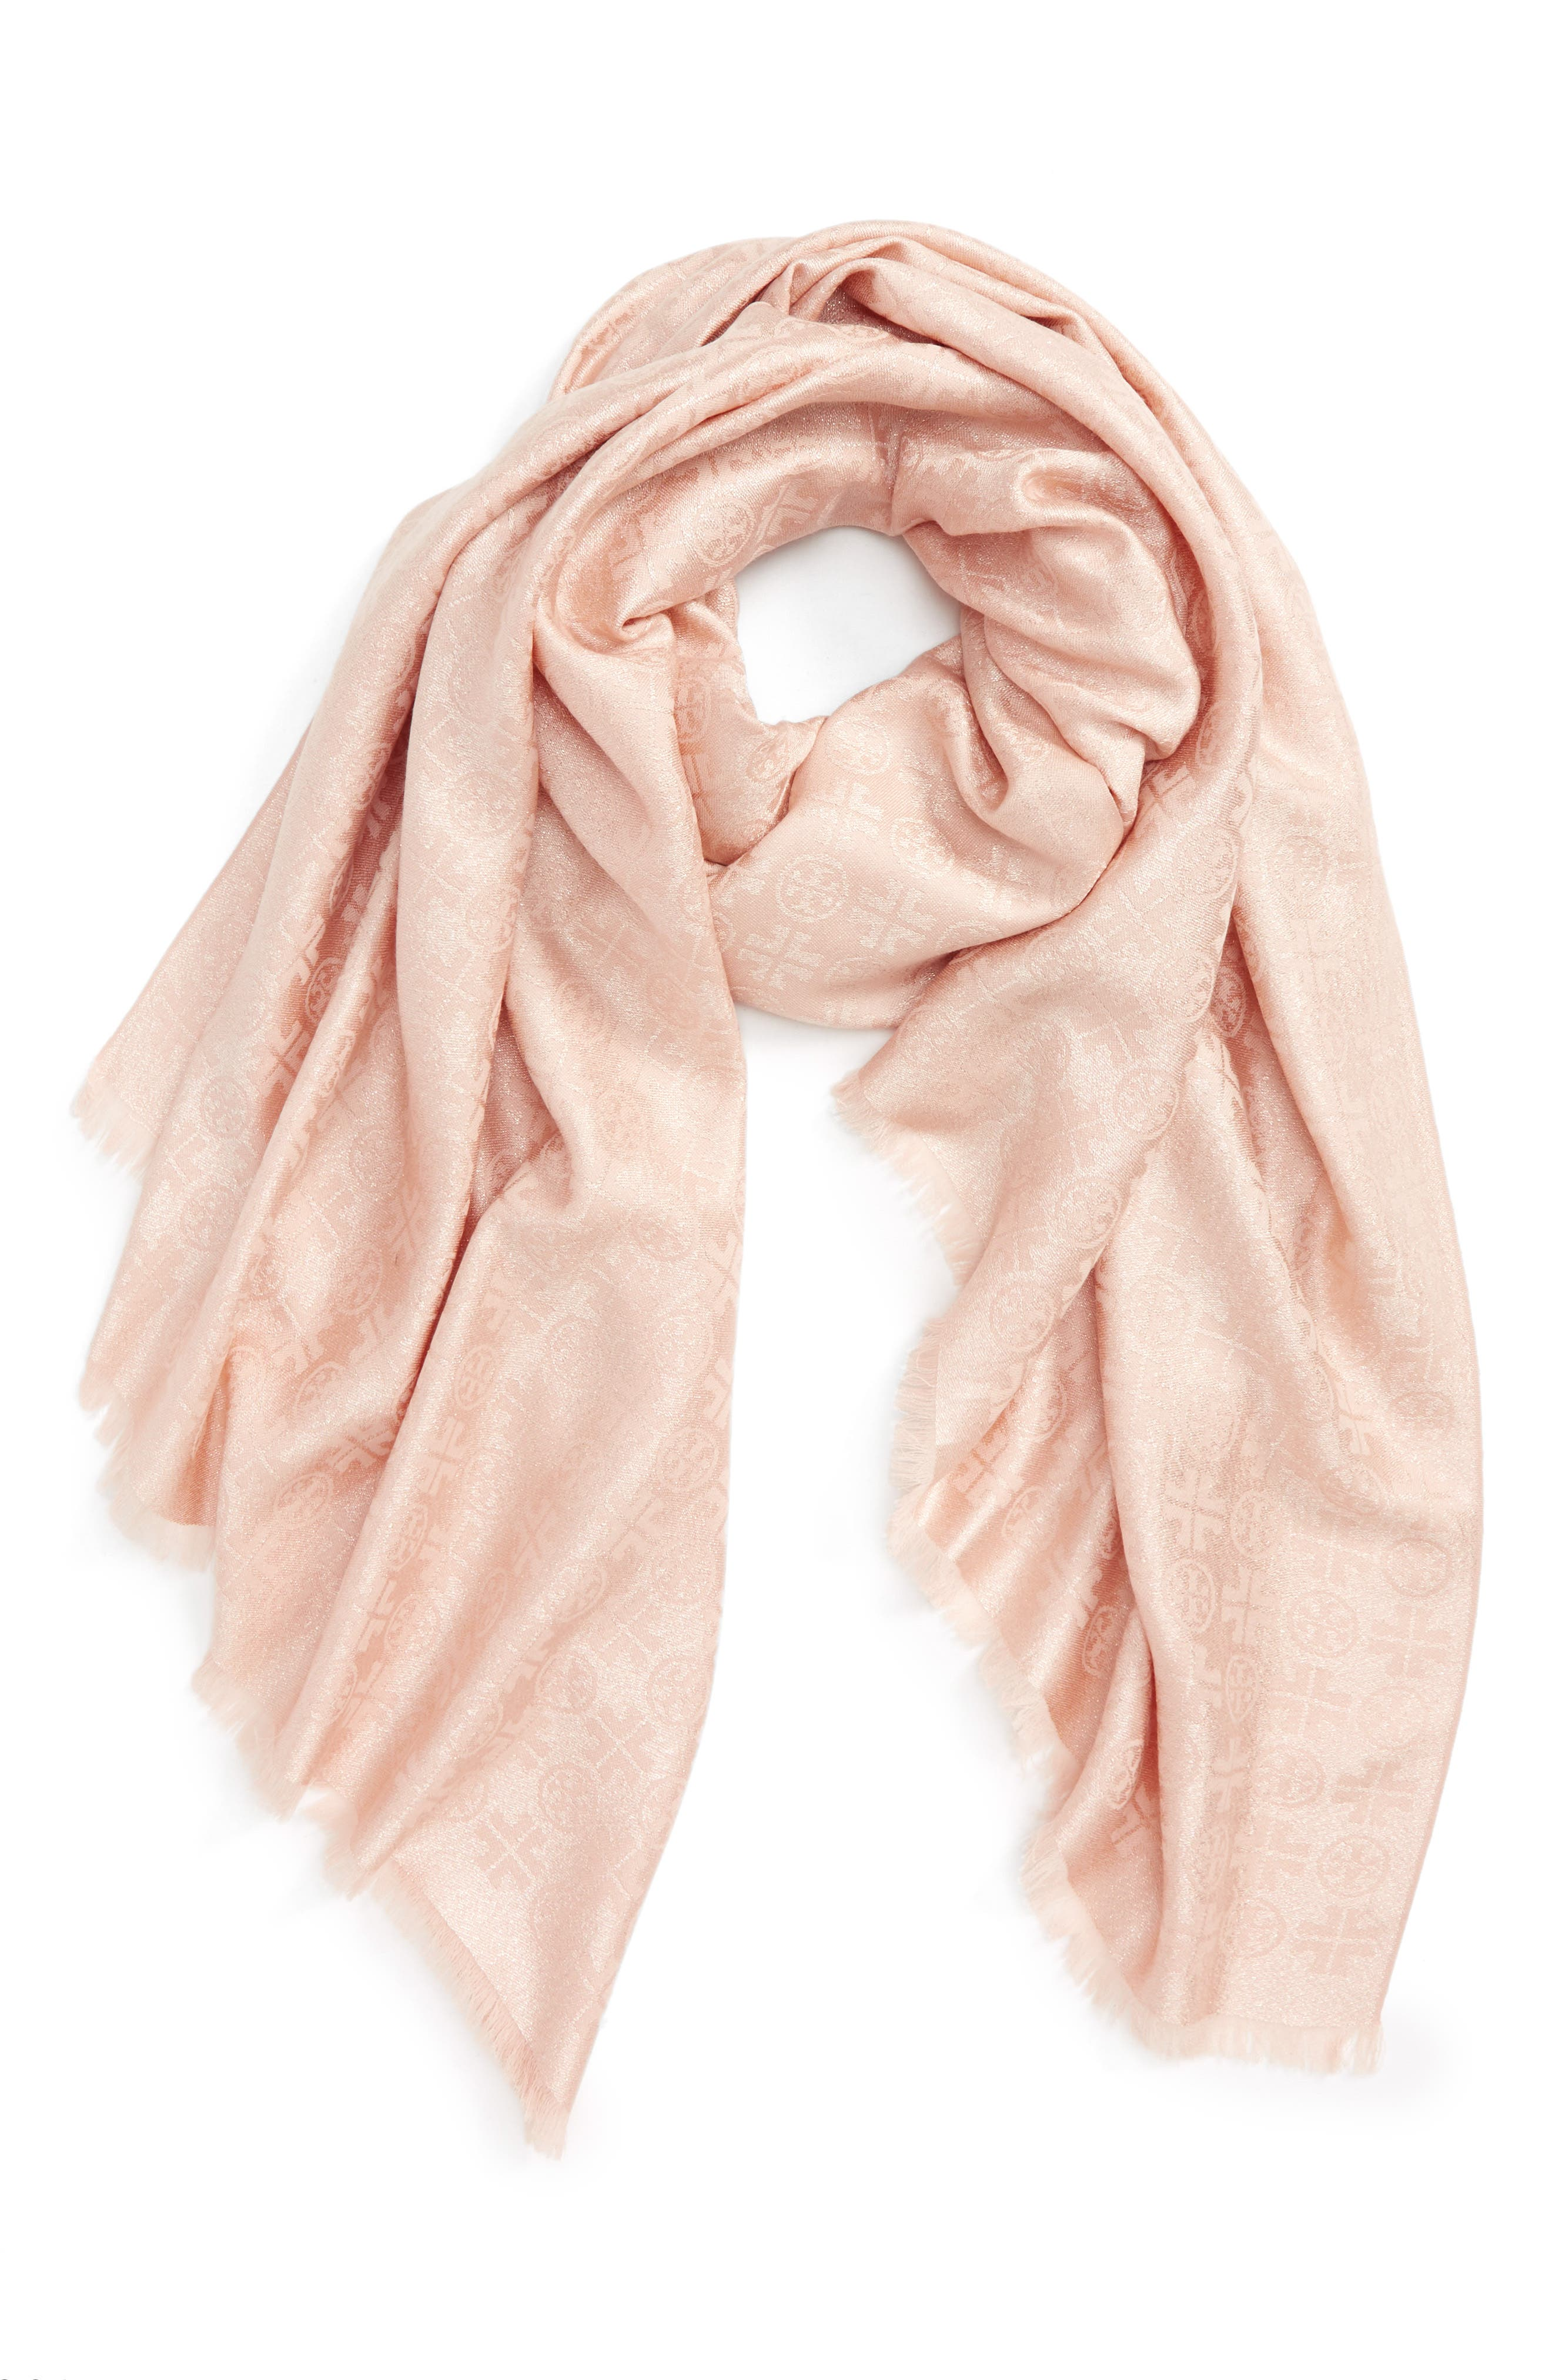 Alternate Image 1 Selected - Tory Burch Traveler Jacquard Oblong Scarf